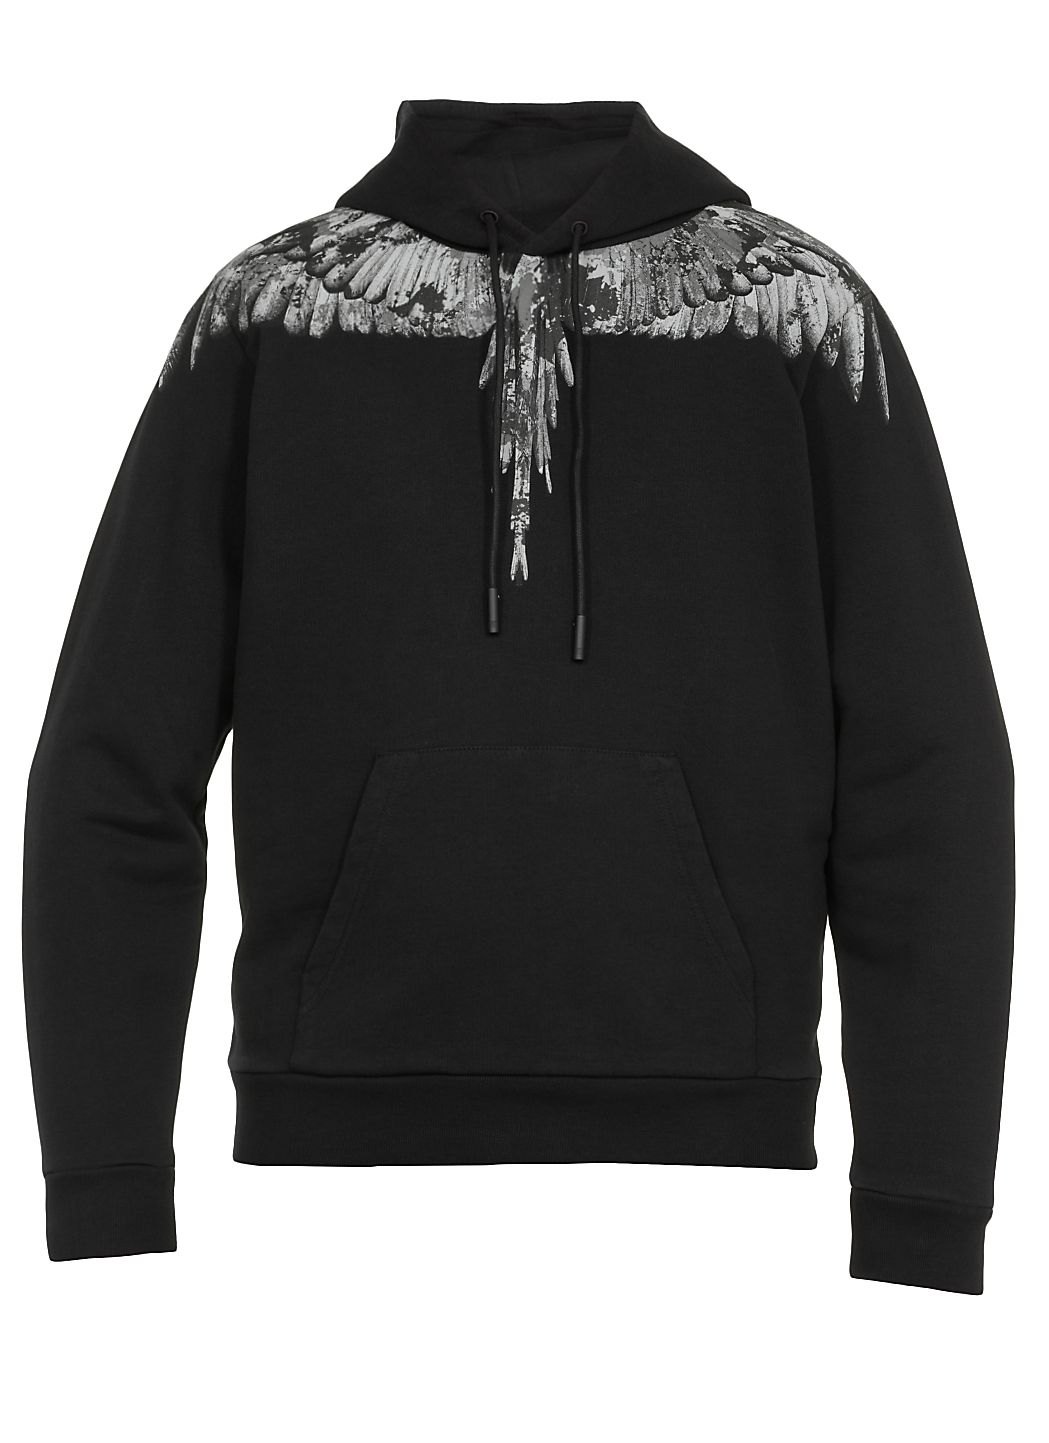 Camou wings sweatshirt